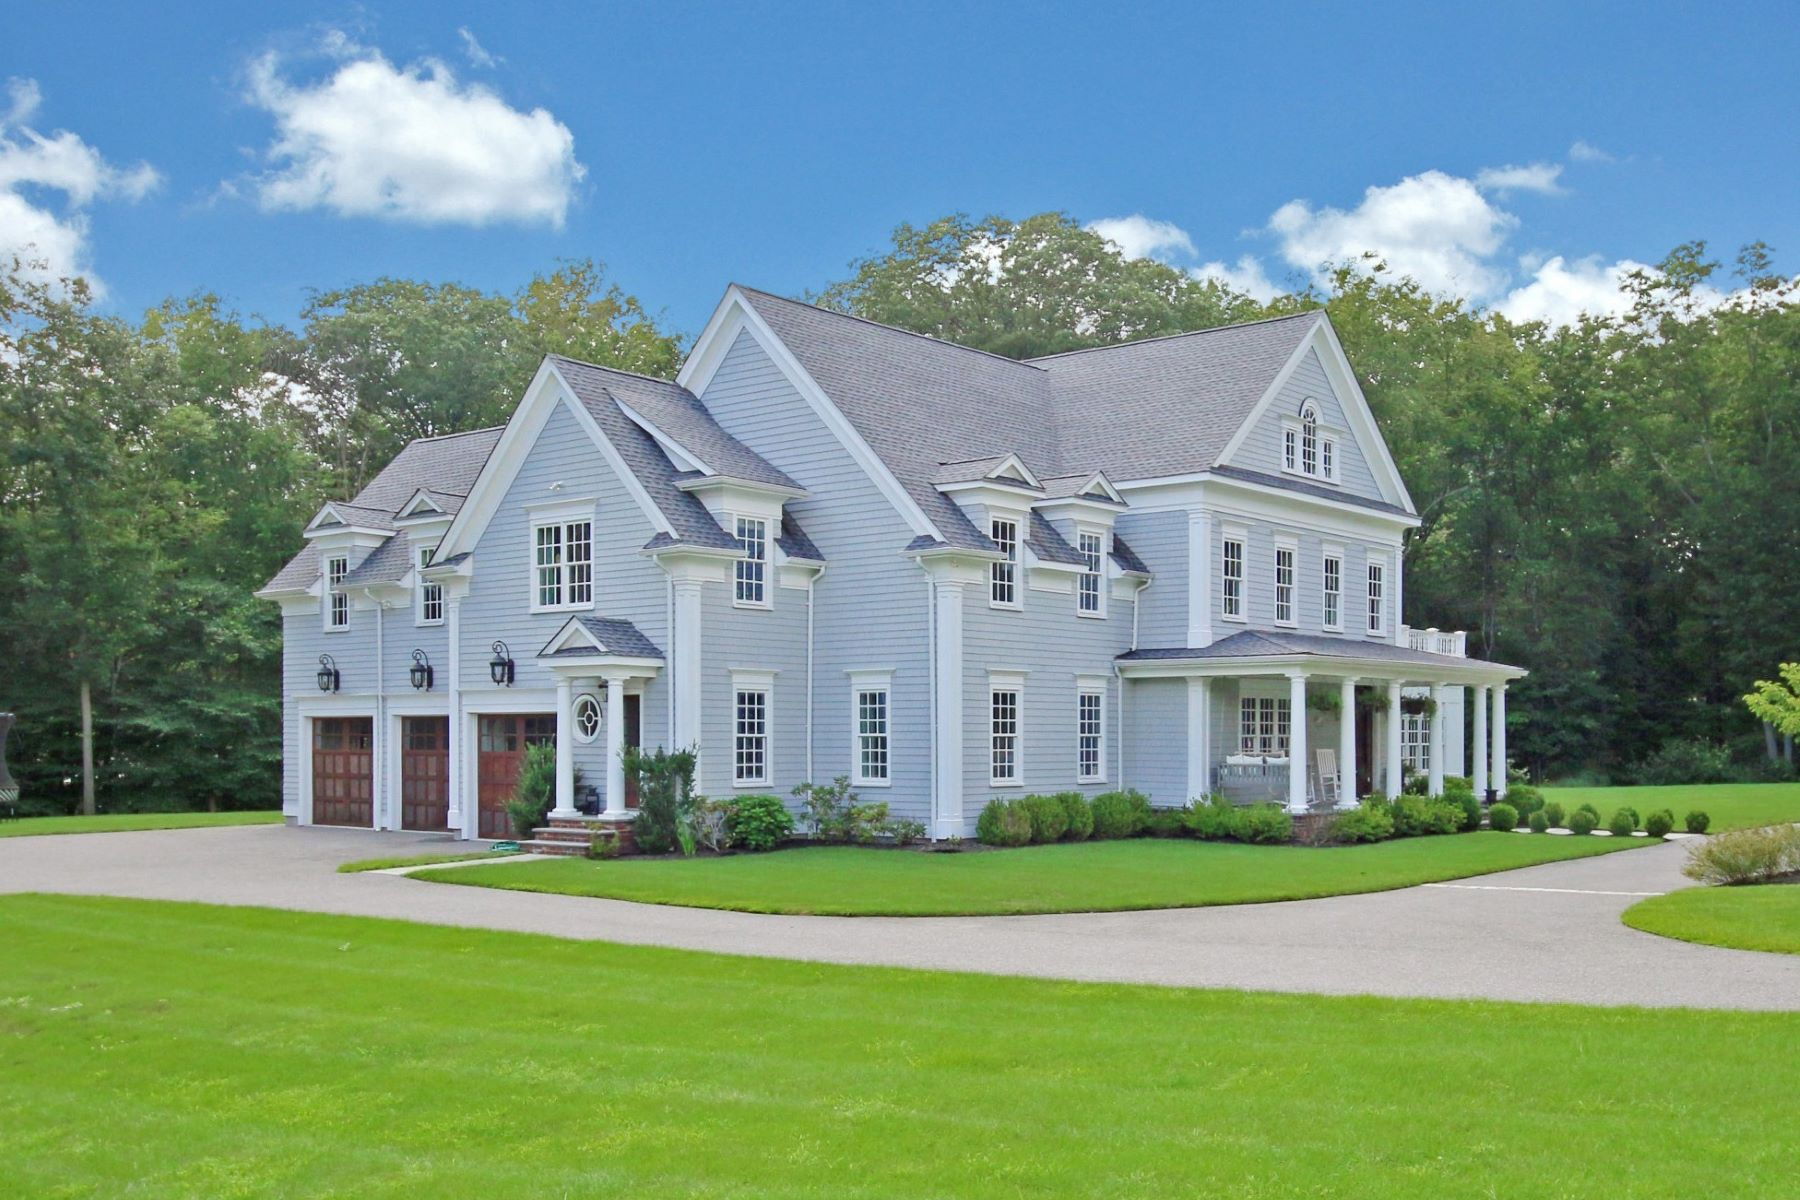 Single Family Homes for Sale at Nearly New Construction - Best of Everything 2 Pump Lane Ridgefield, Connecticut 06877 United States